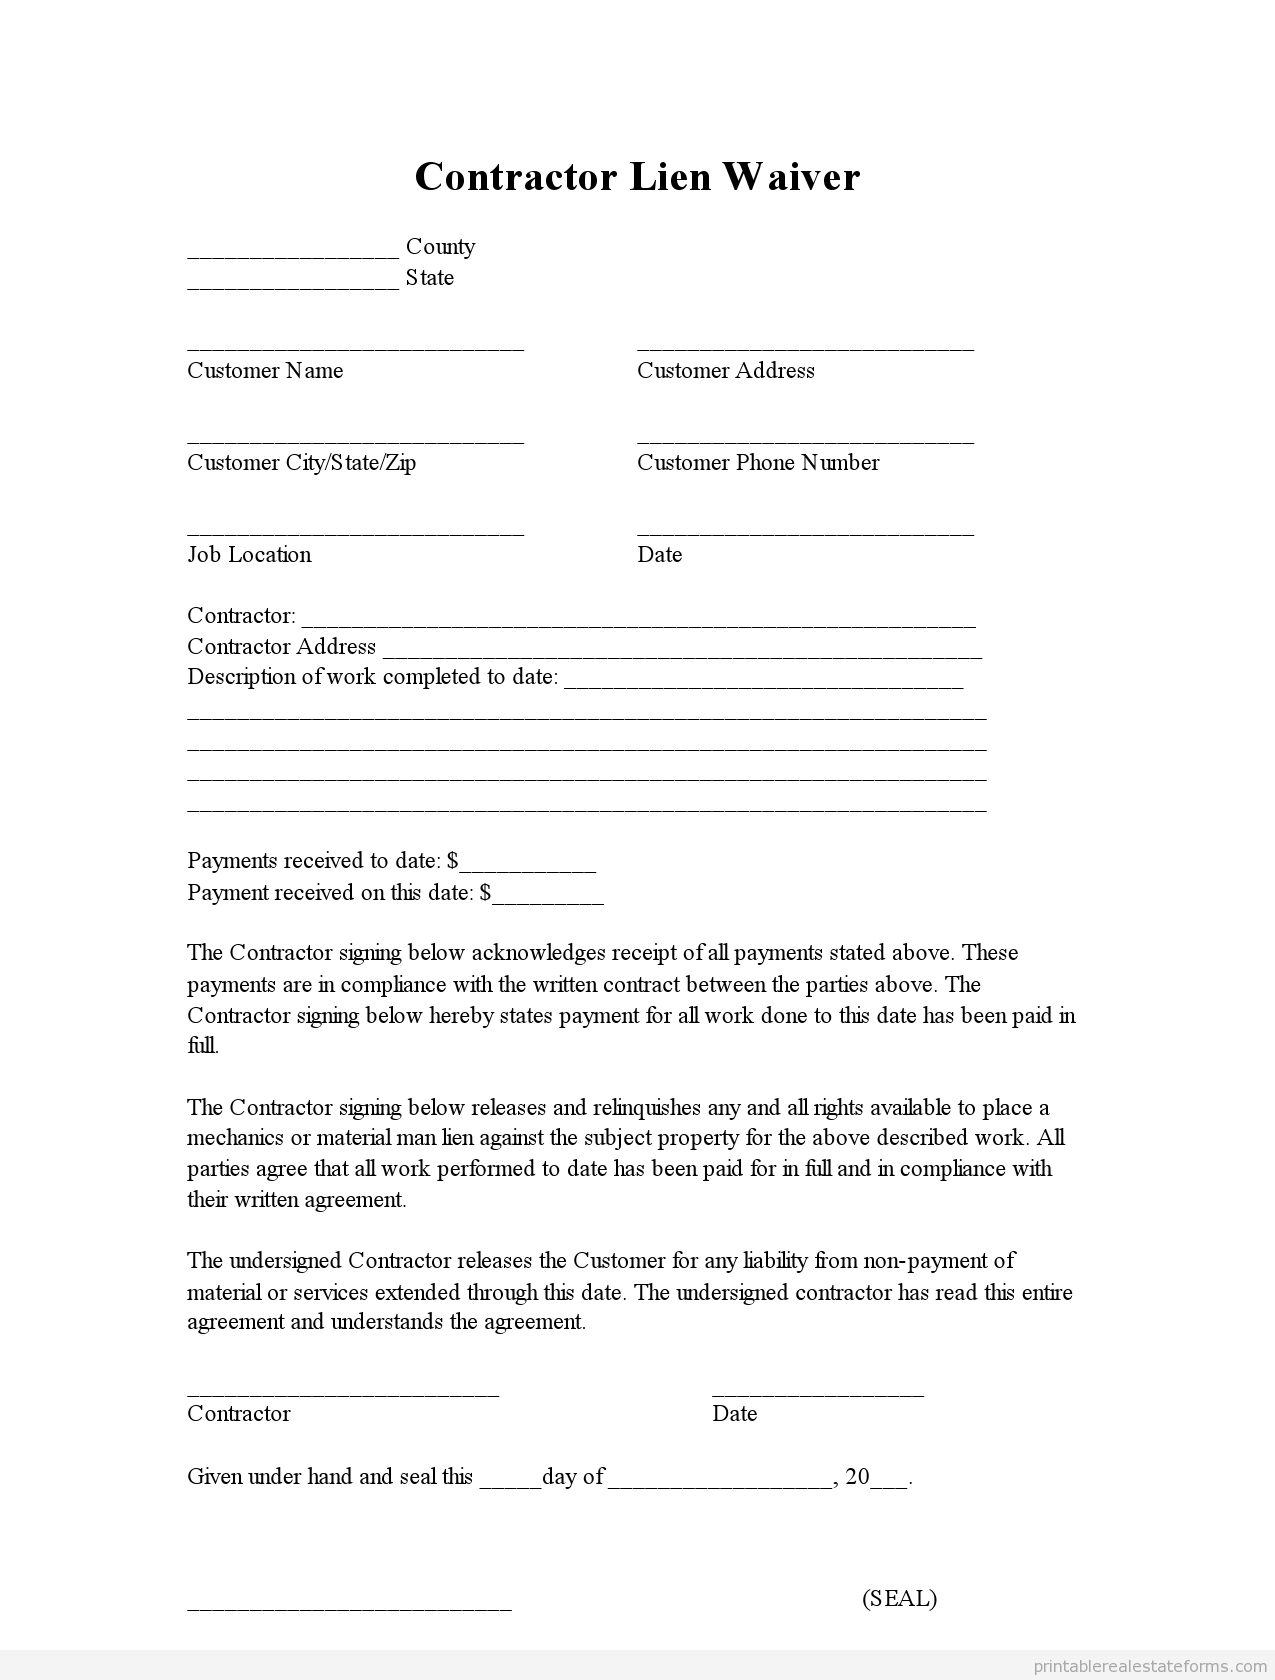 image relating to Printable Lien Form named Pattern Printable contractor lien waiver Kind Printable